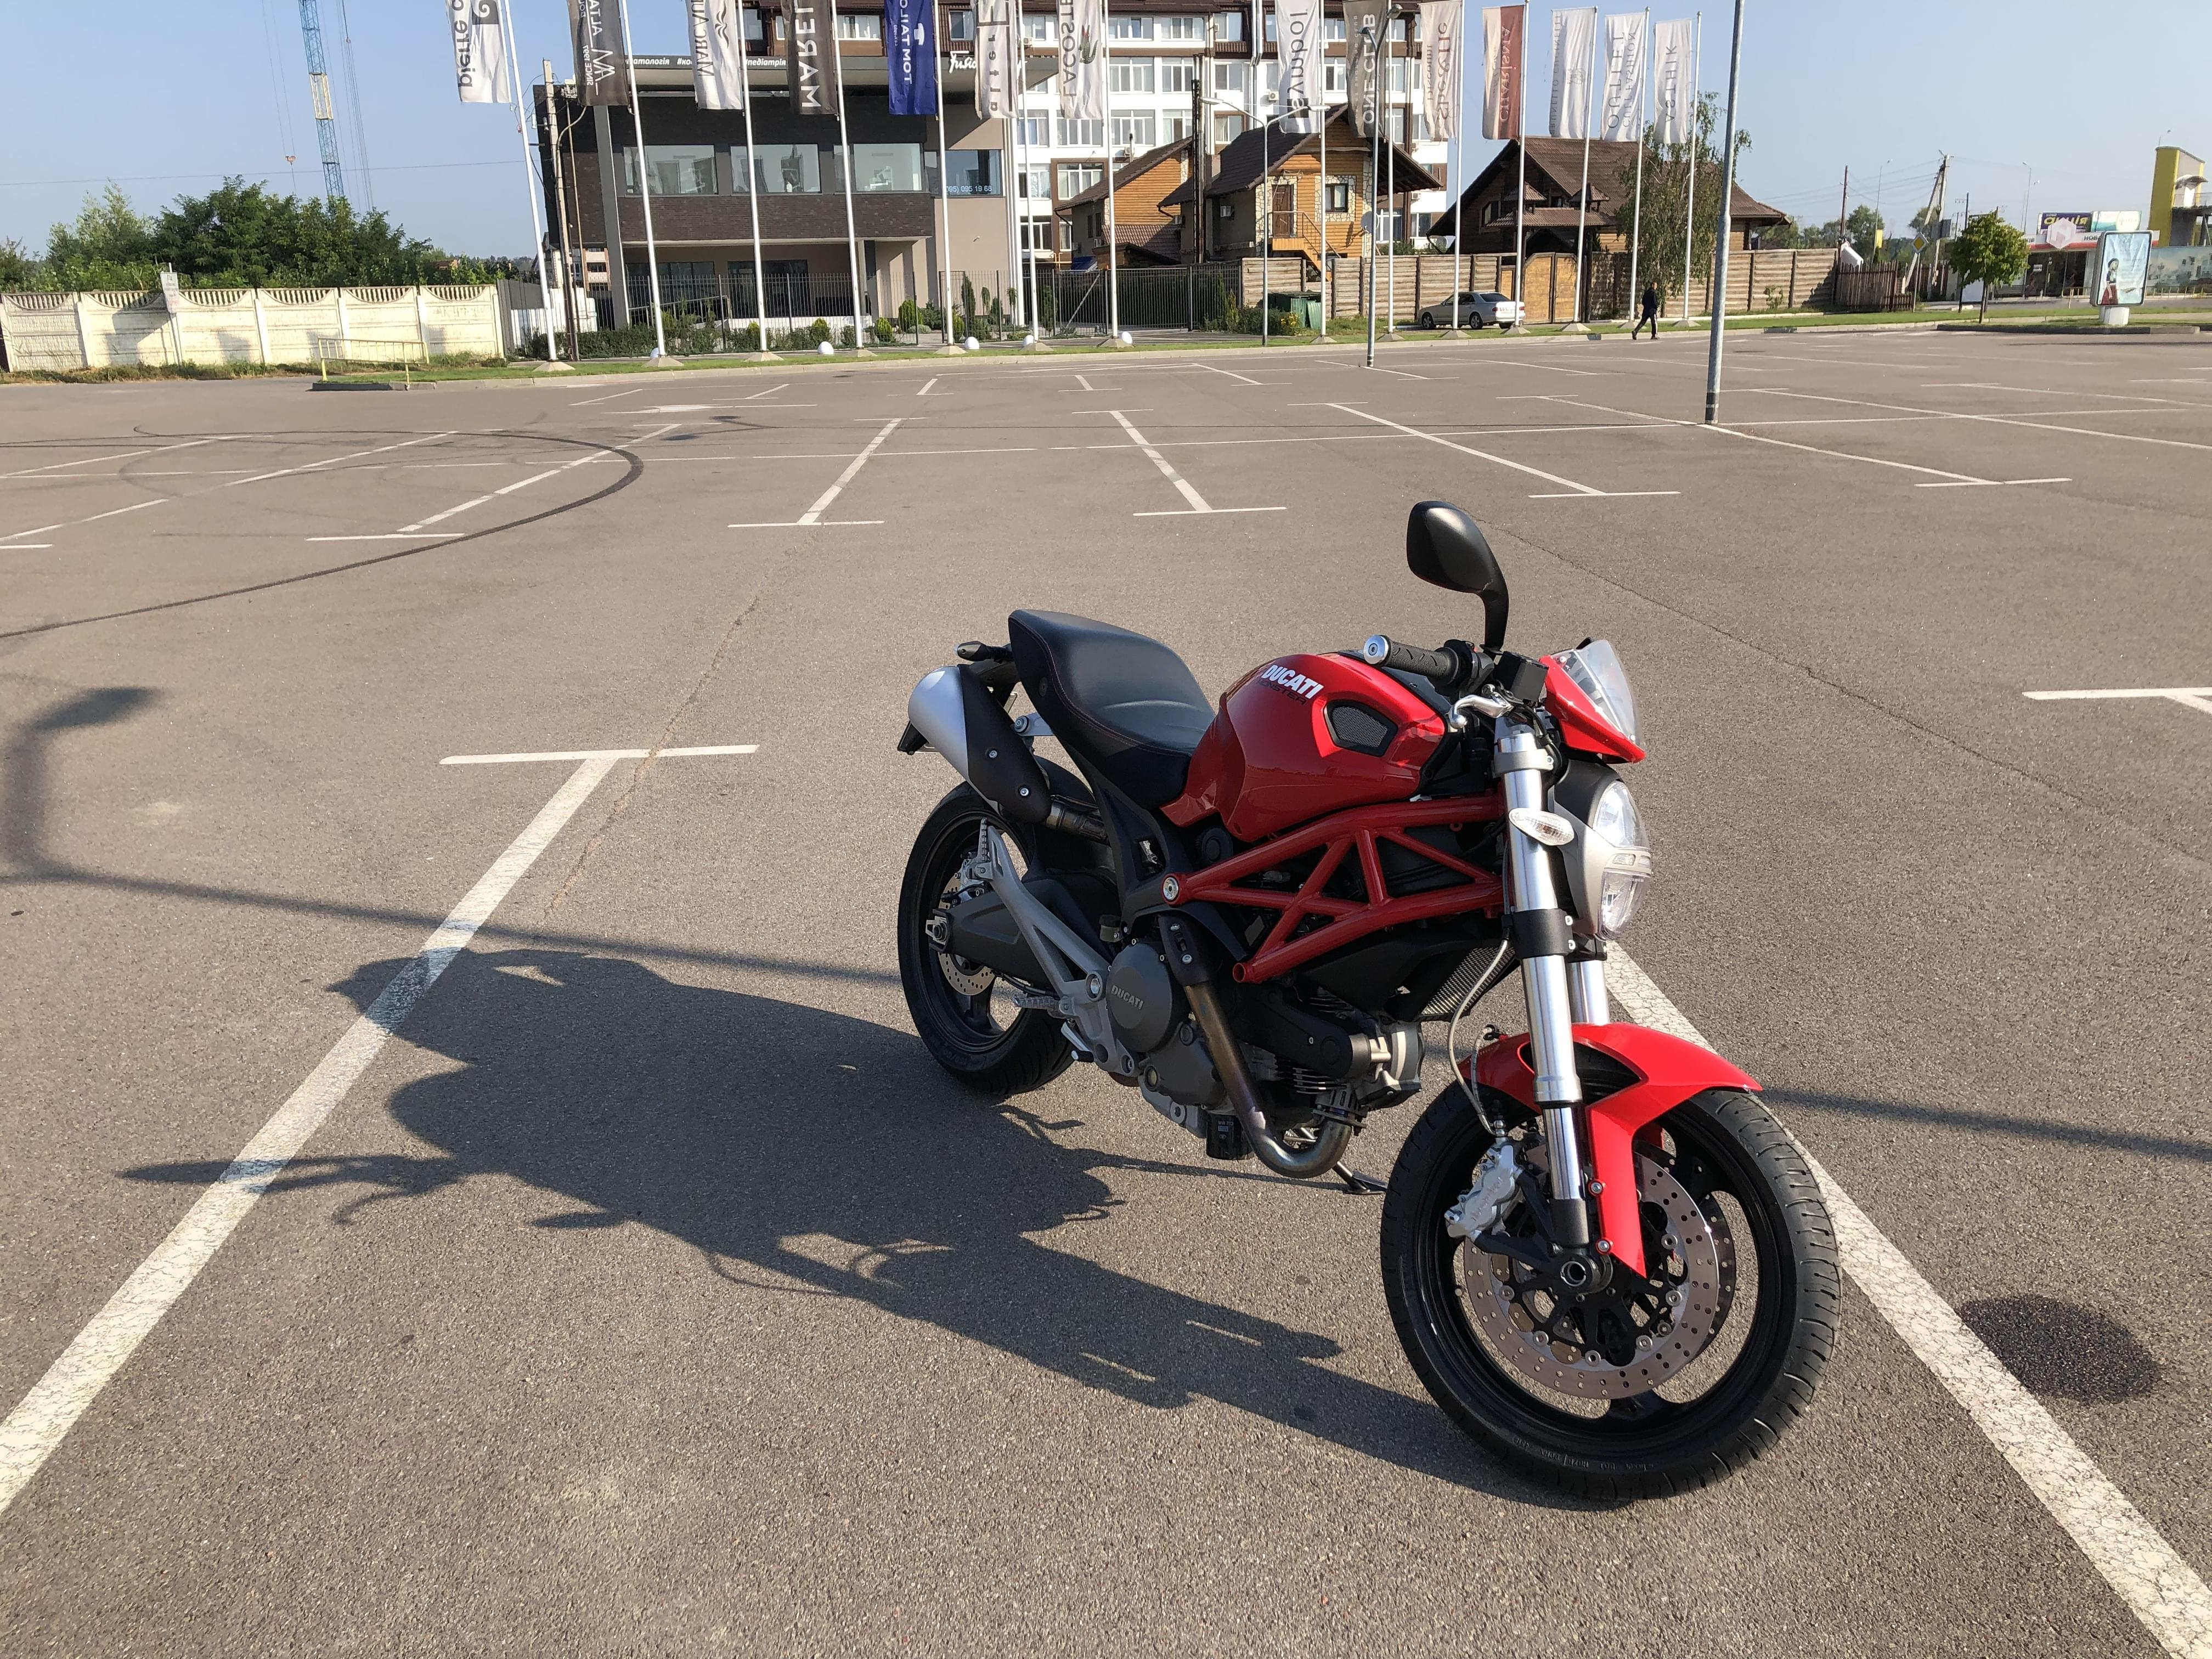 Ducati Monster 696 for rental